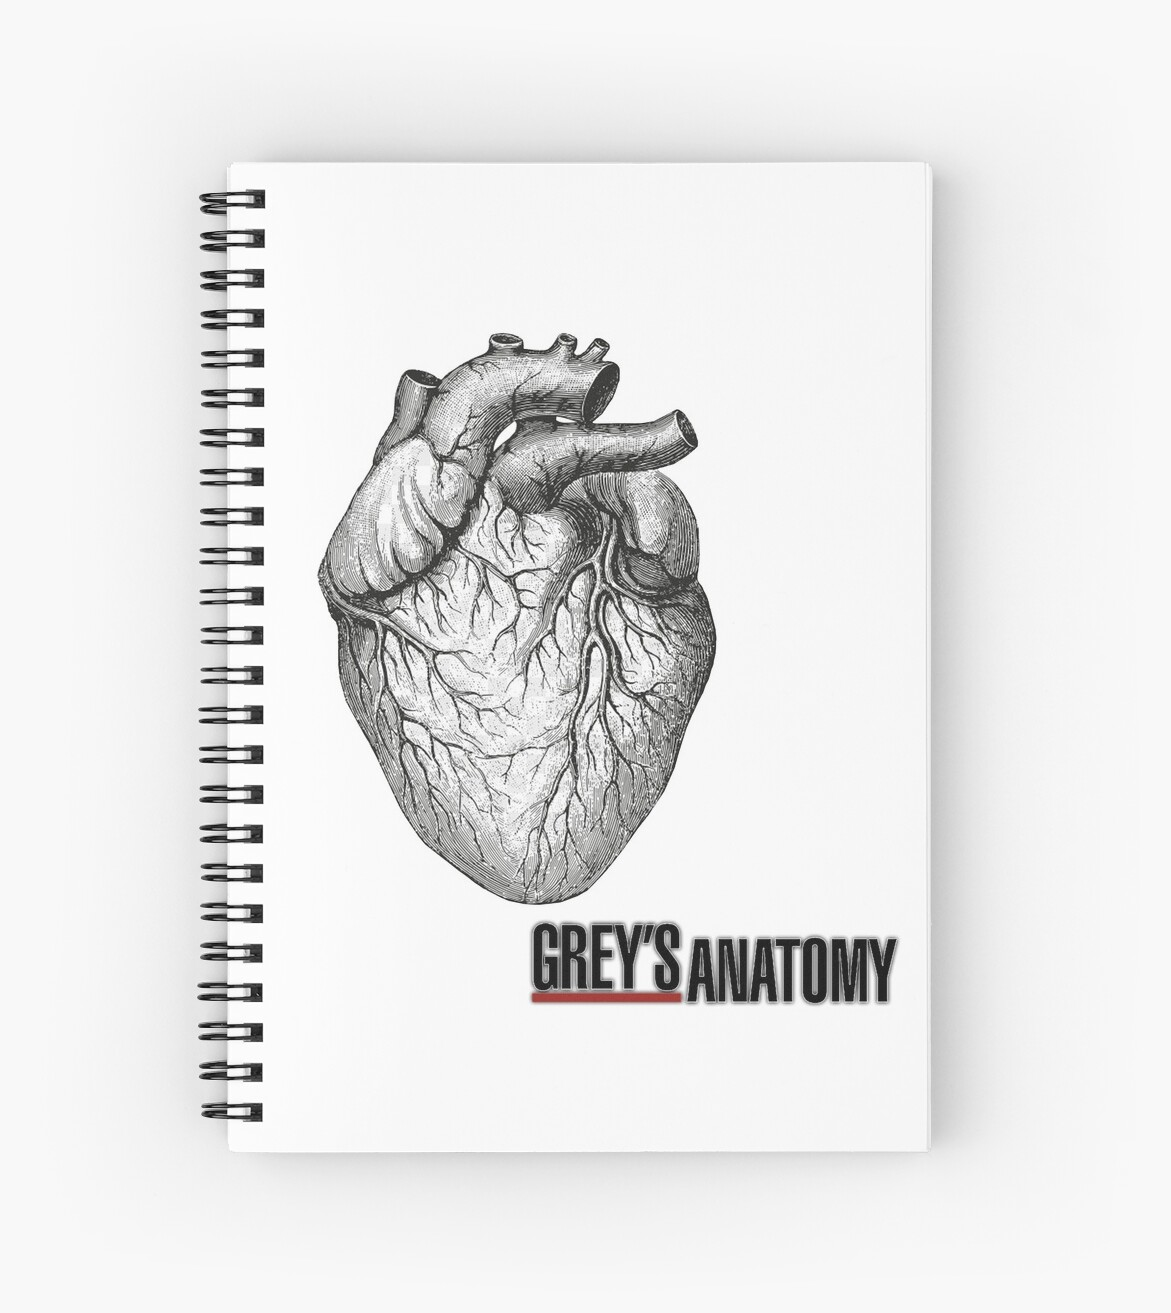 diagram of grey\'s anatomy grey s anatomy heart  spiral notebook by martinabaiardi1 redbubble  grey s anatomy heart  spiral notebook